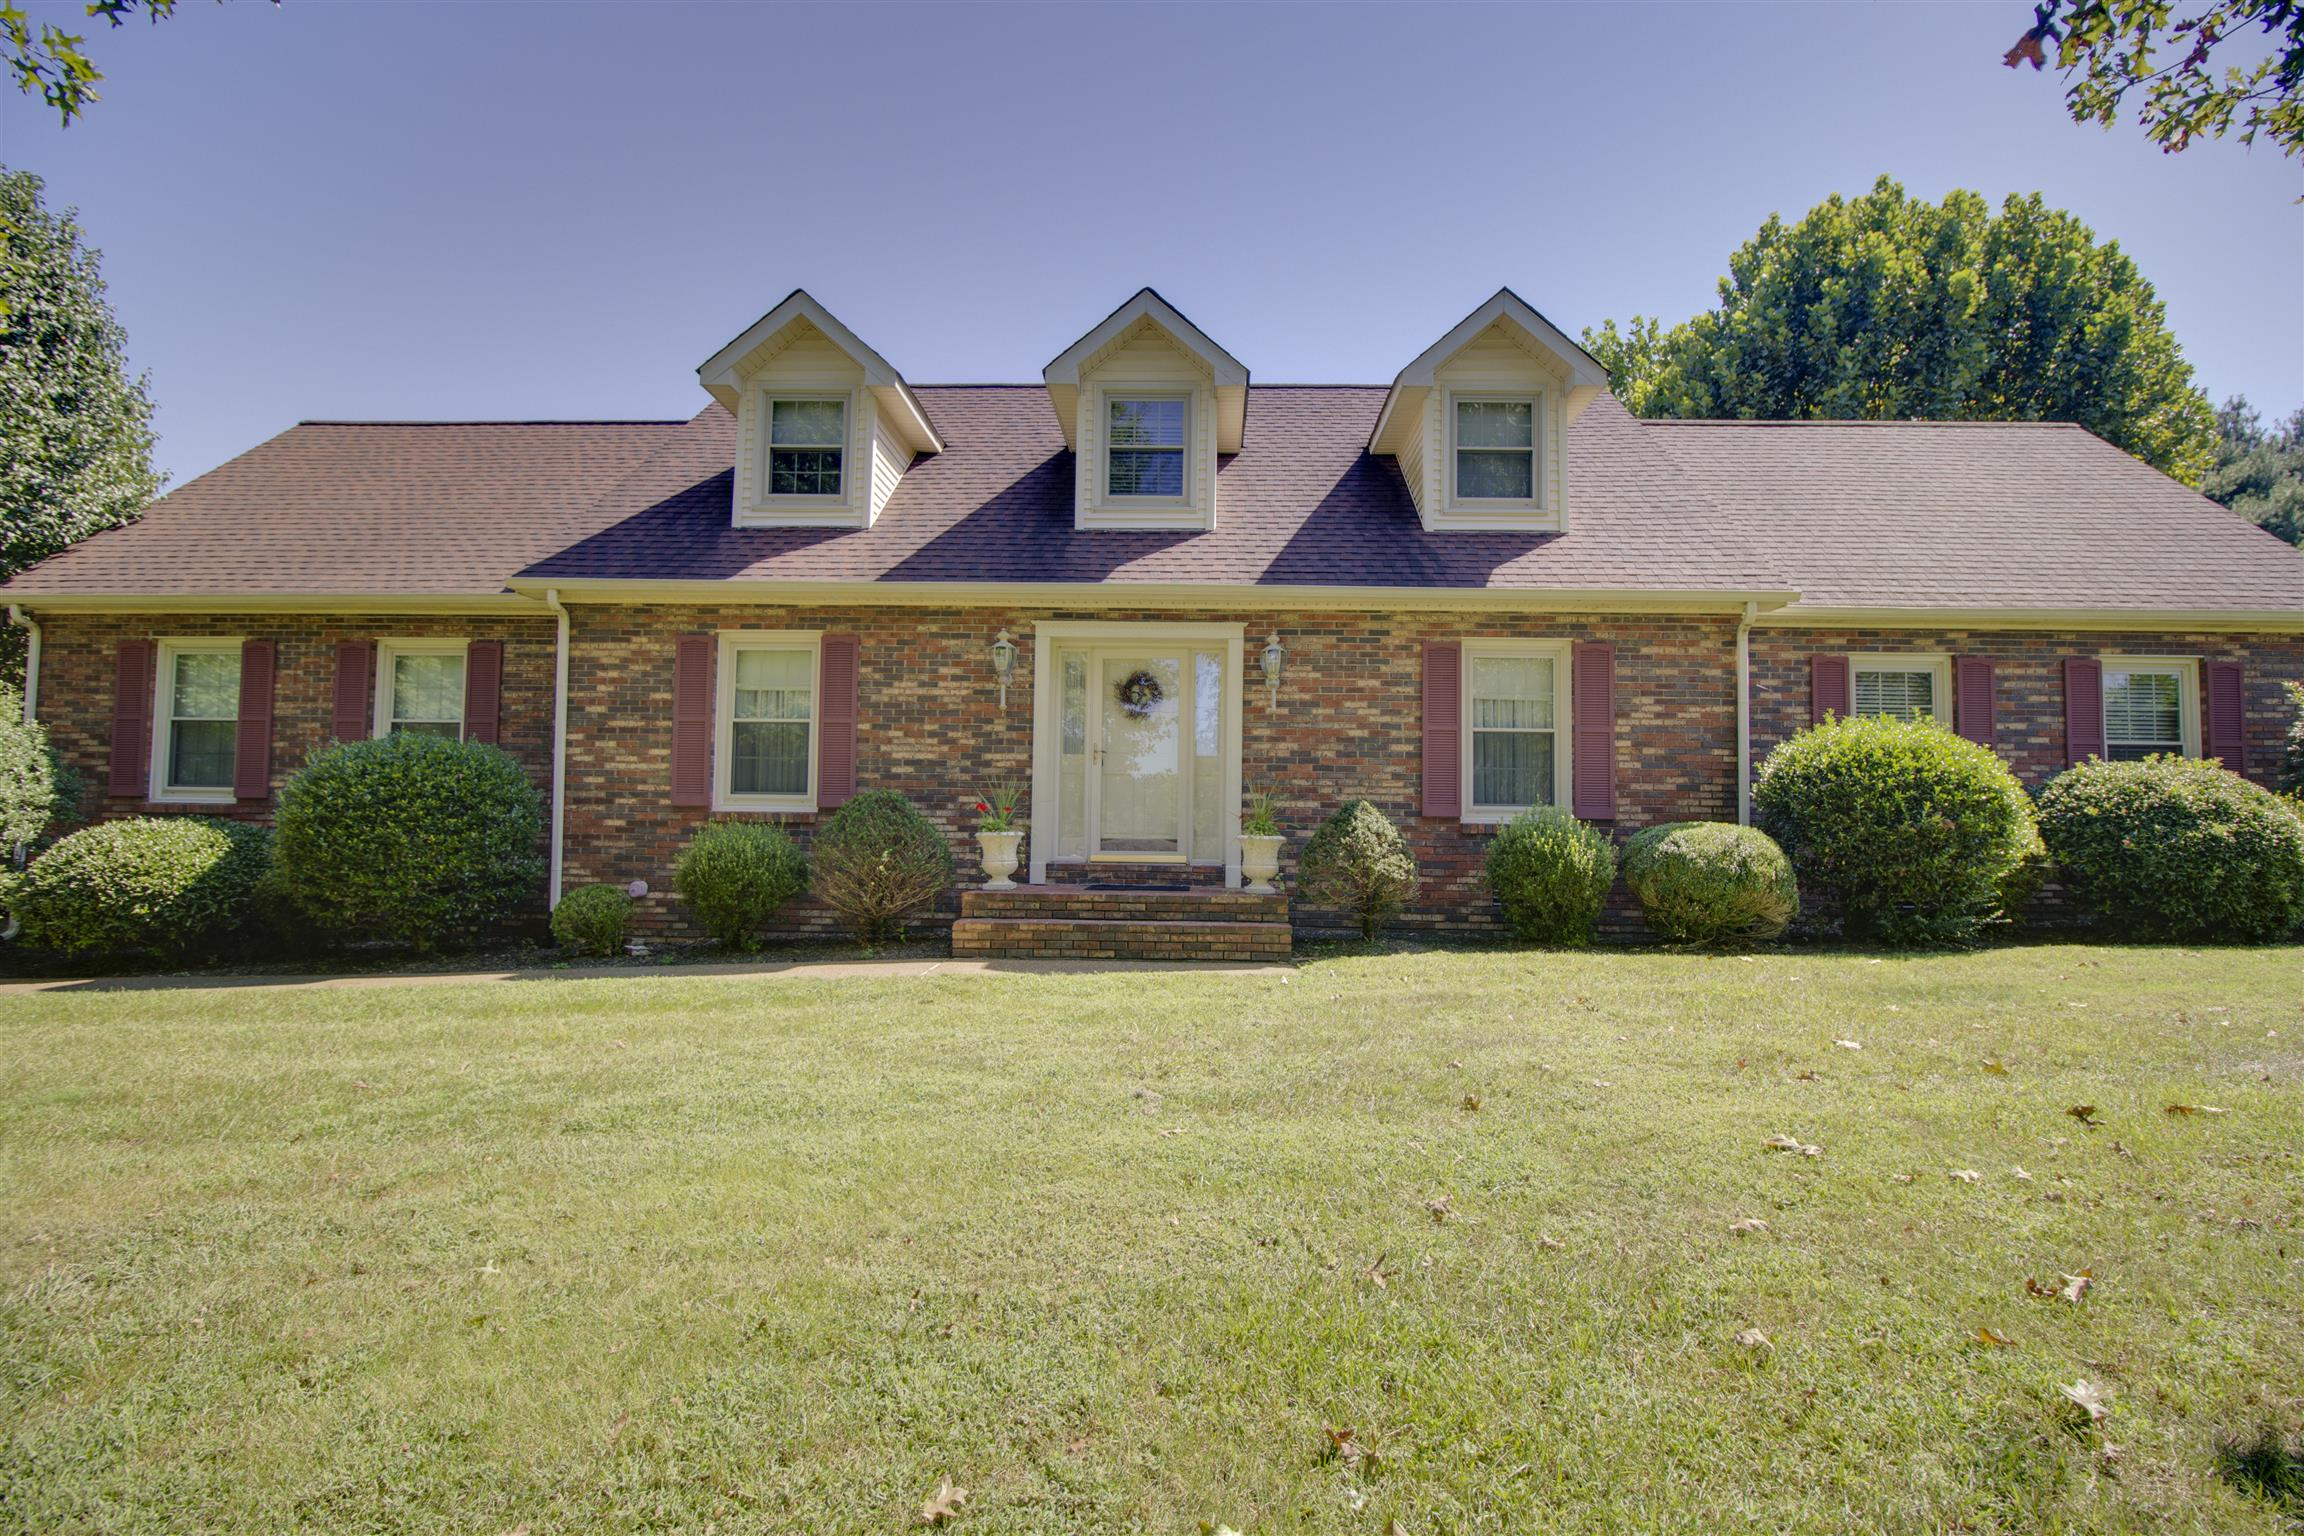 6 Pettross Dr, Carthage, TN 37030 - Carthage, TN real estate listing